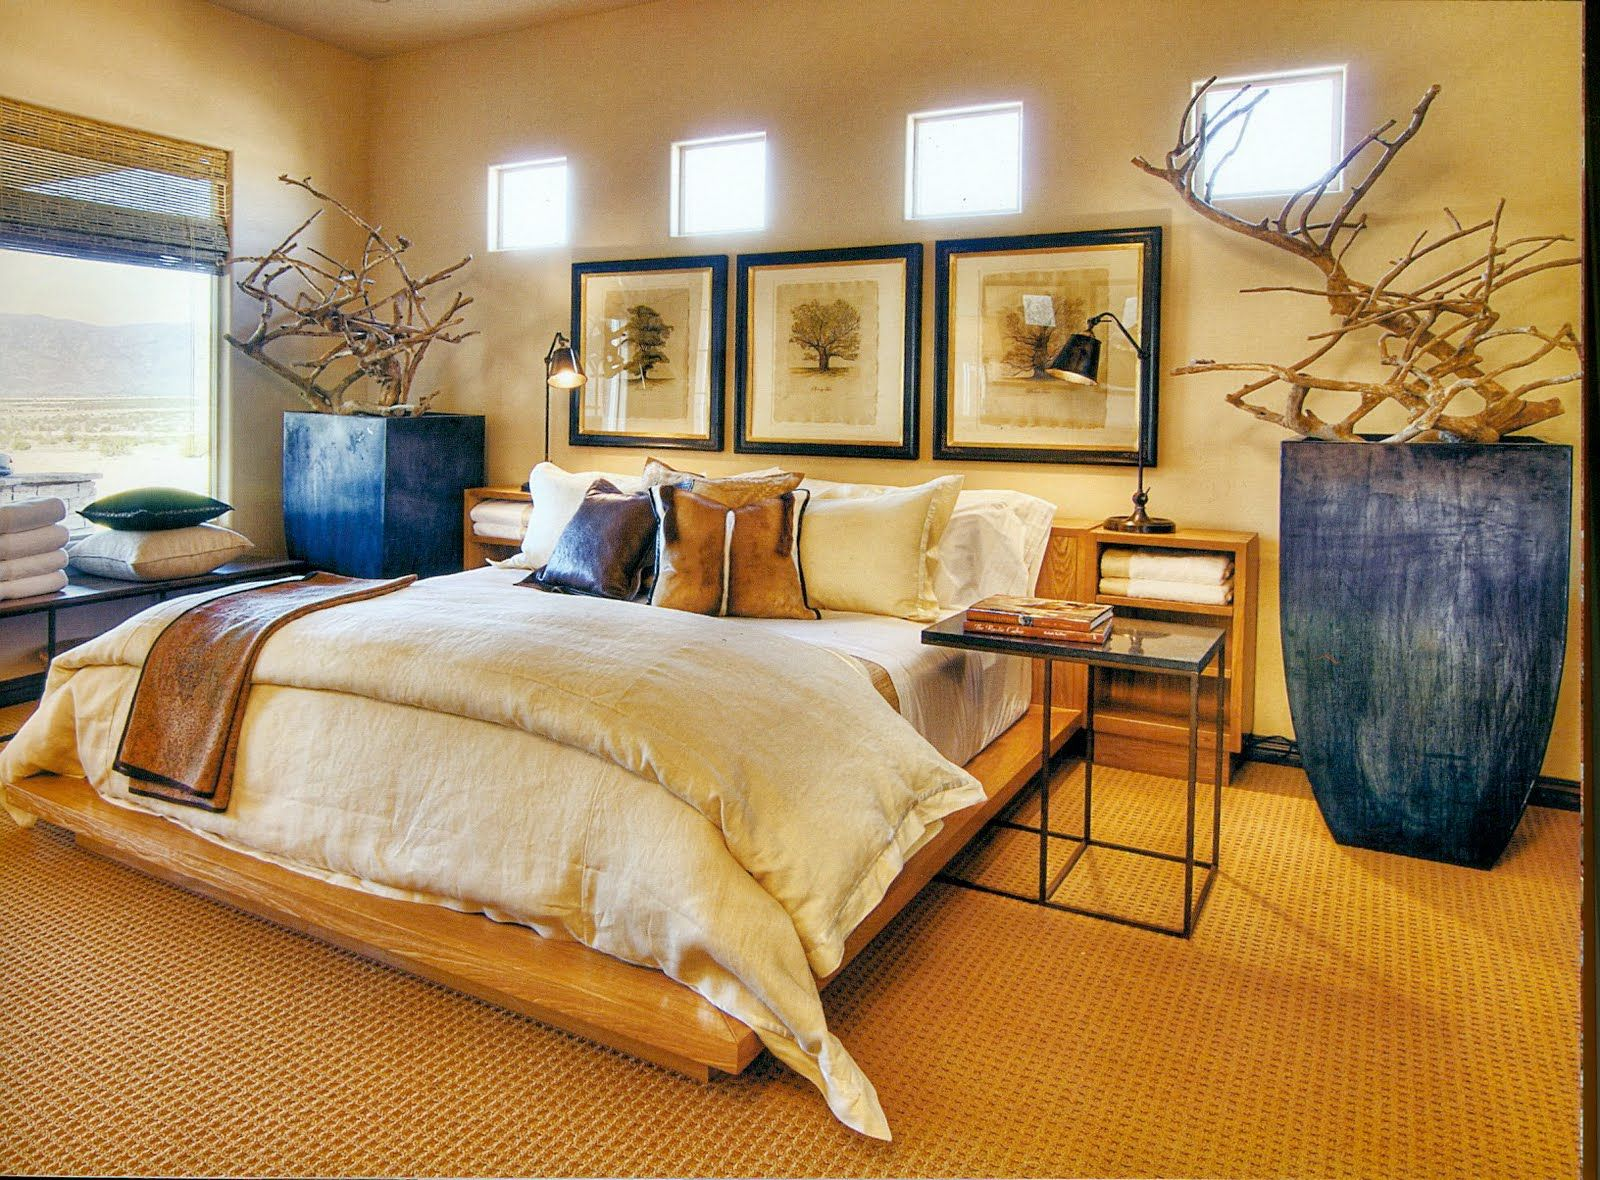 Decorating With African African Contemporary Bedroom